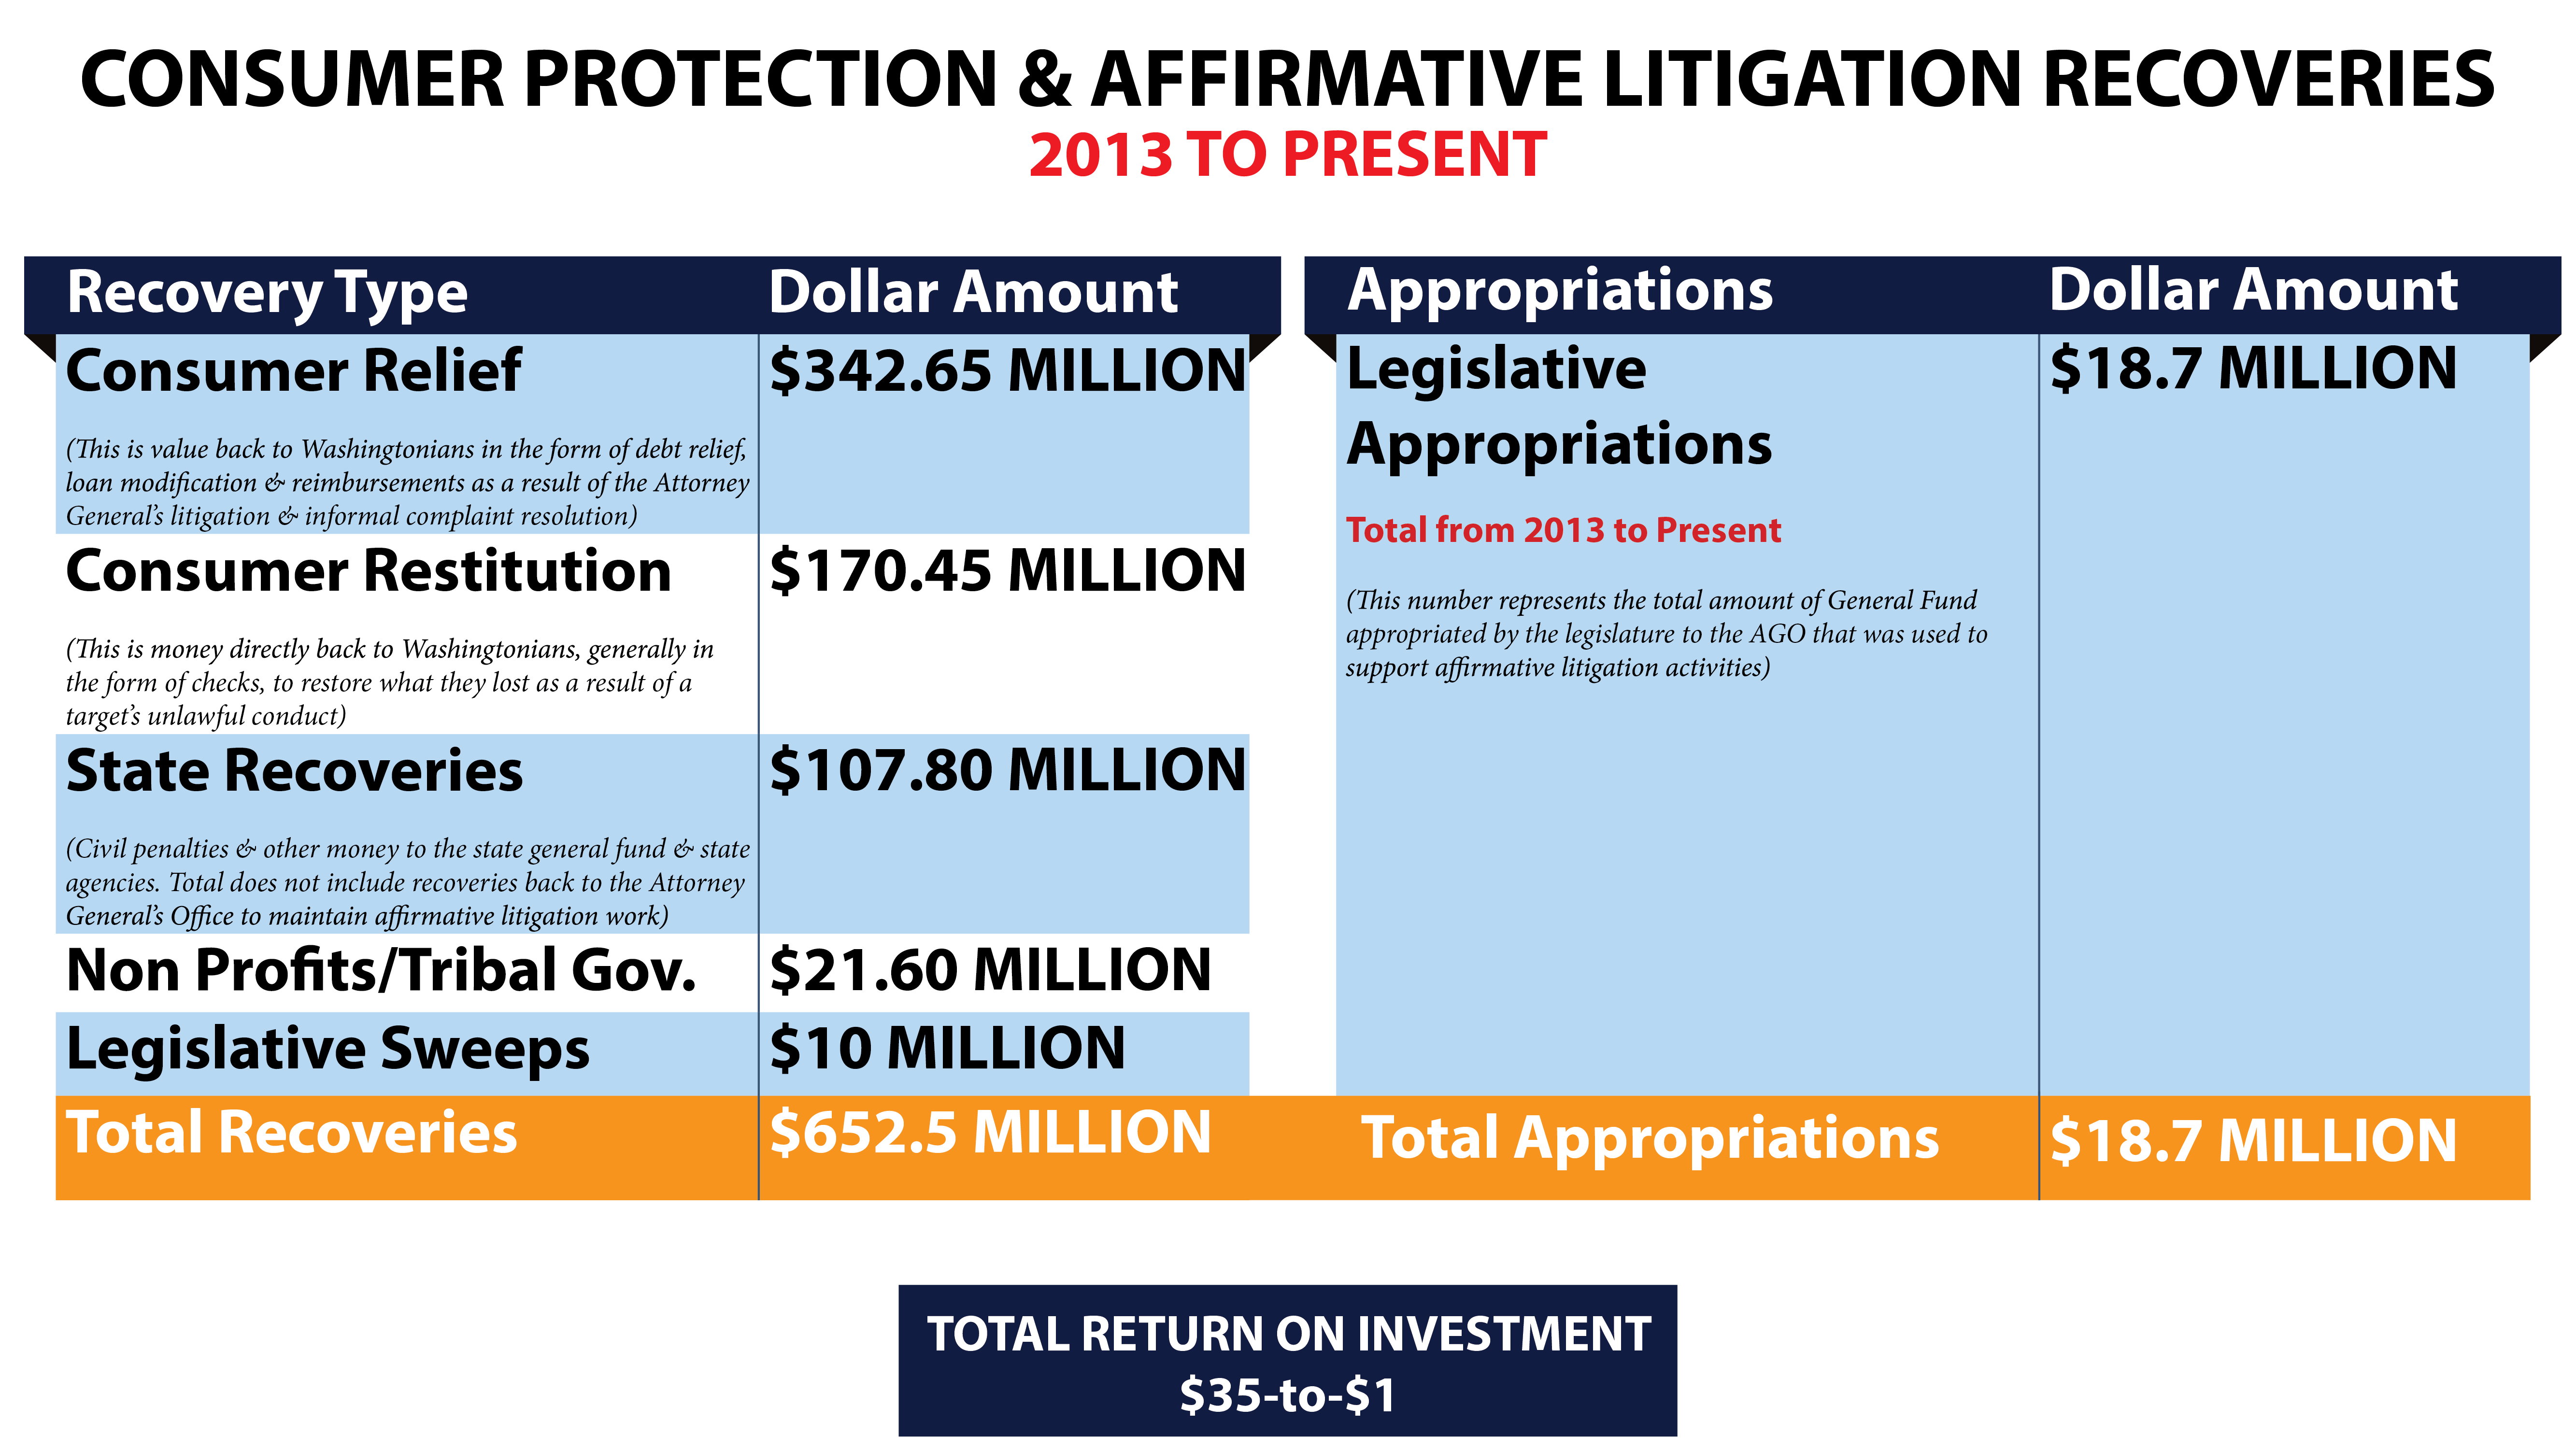 Image: Consumer recoveries and legislative appropriations figures